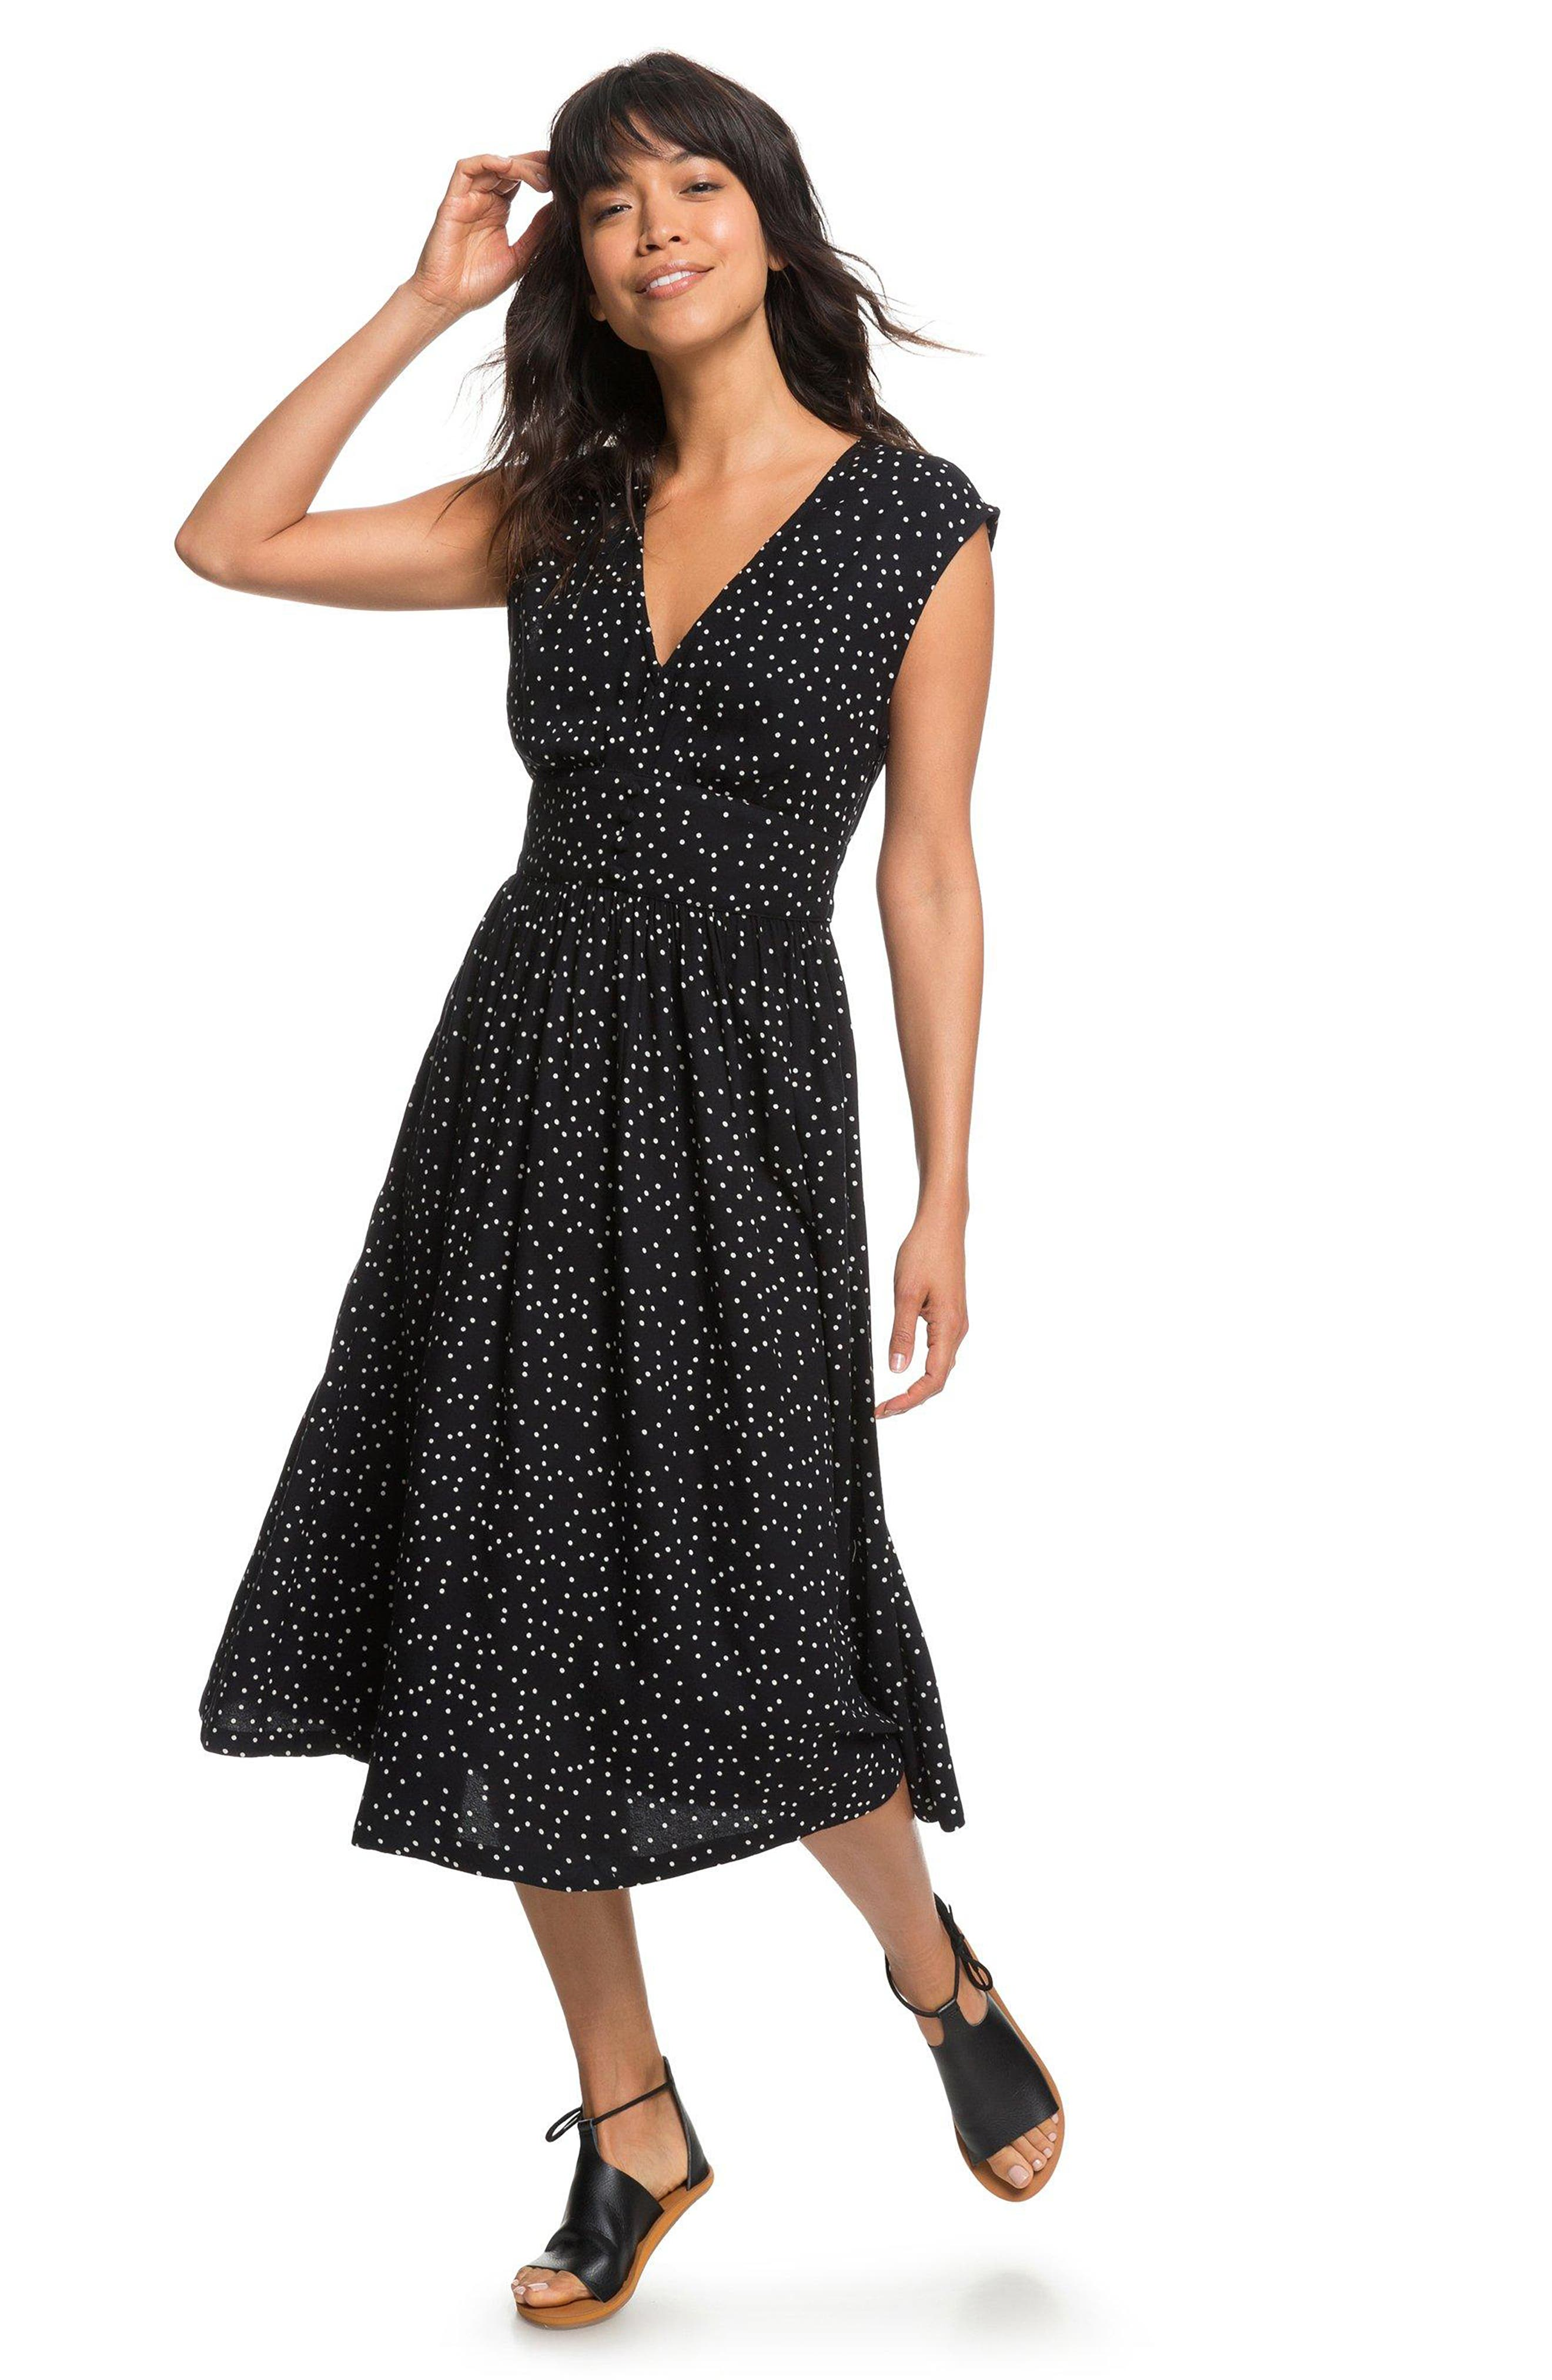 Retro Poetic Polka Dot Dress,                             Alternate thumbnail 8, color,                             001